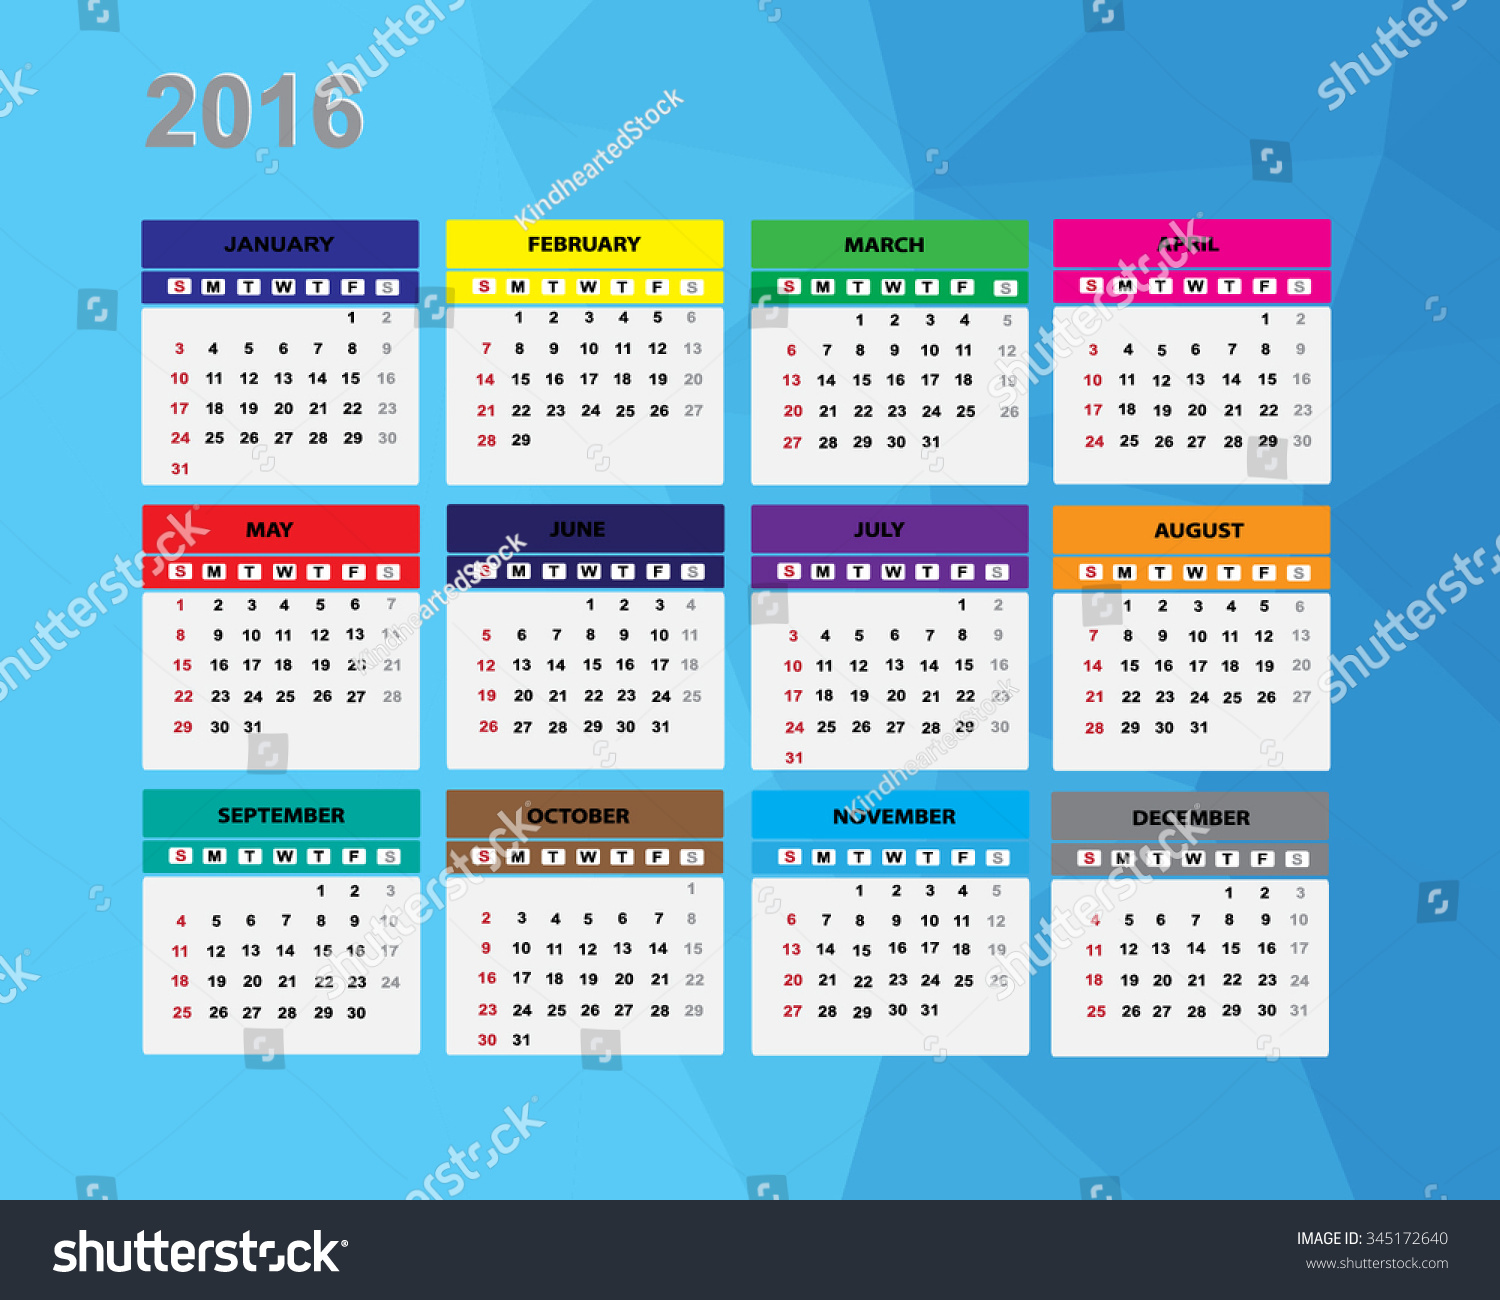 Calendar Illustration Vector : Calendar illustration stock vector